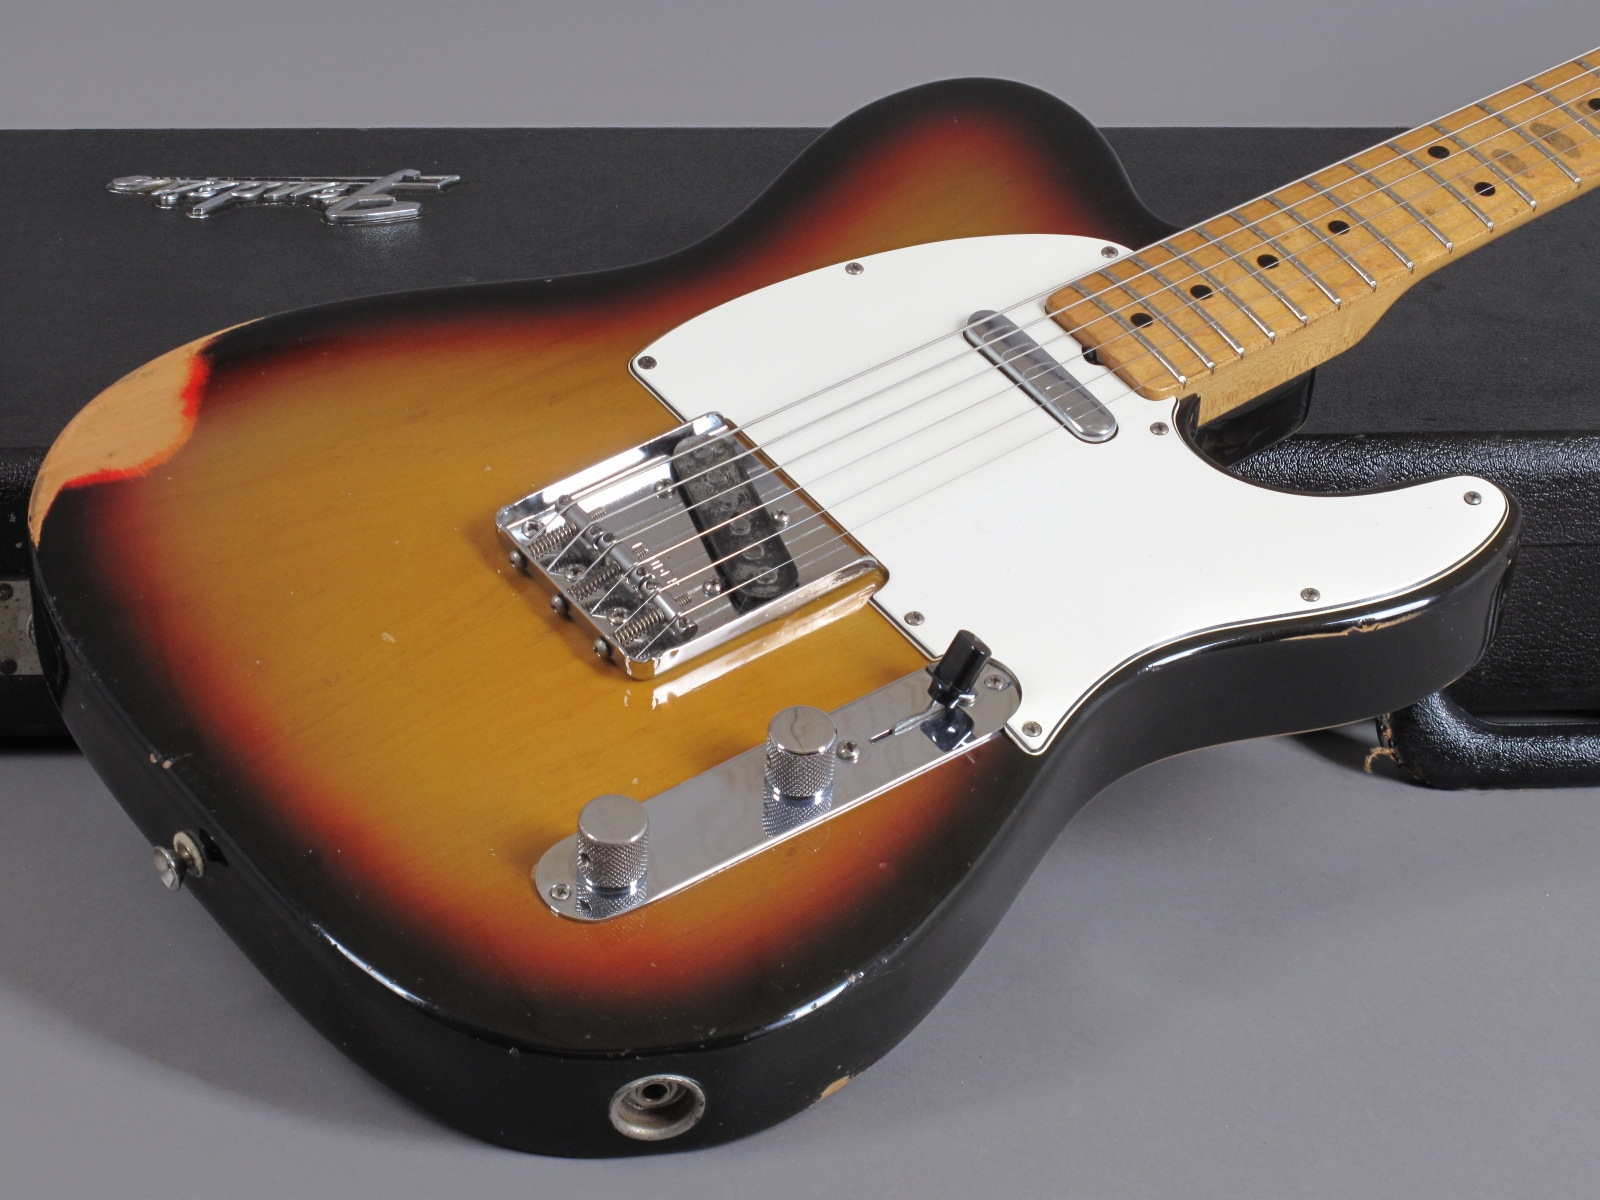 https://guitarpoint.de/app/uploads/products/1975-fender-telecaster-sunburst-light-74-specs/Fender75Tele3tSB649917_17.jpg